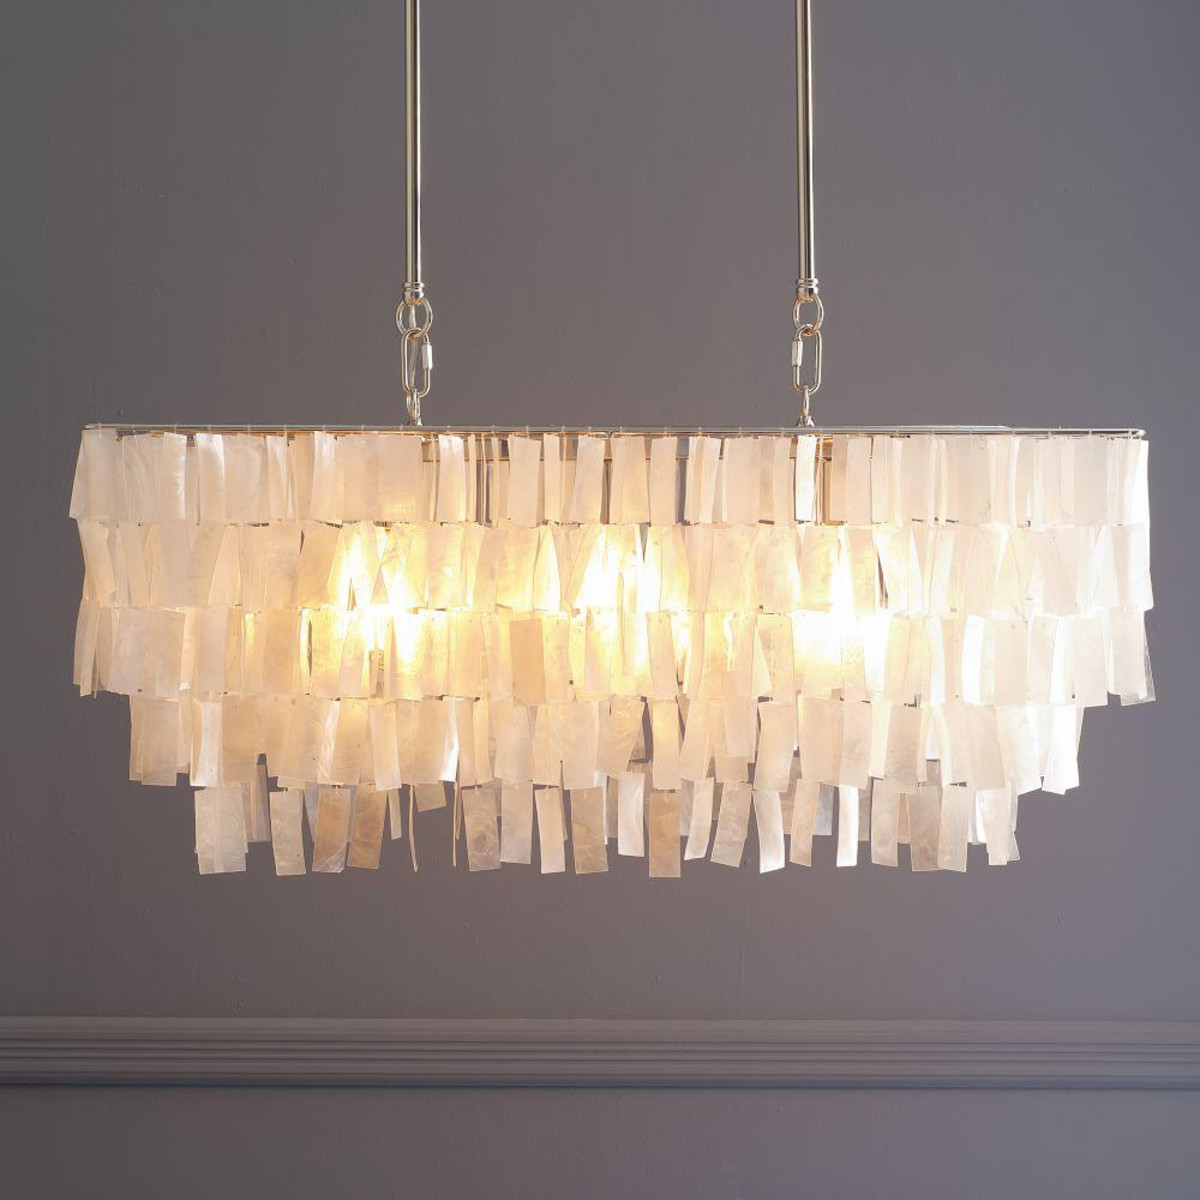 Pottery Barn Ceiling Lights | West Elm Chandelier | Pottery Barn Ceiling Light Fixtures